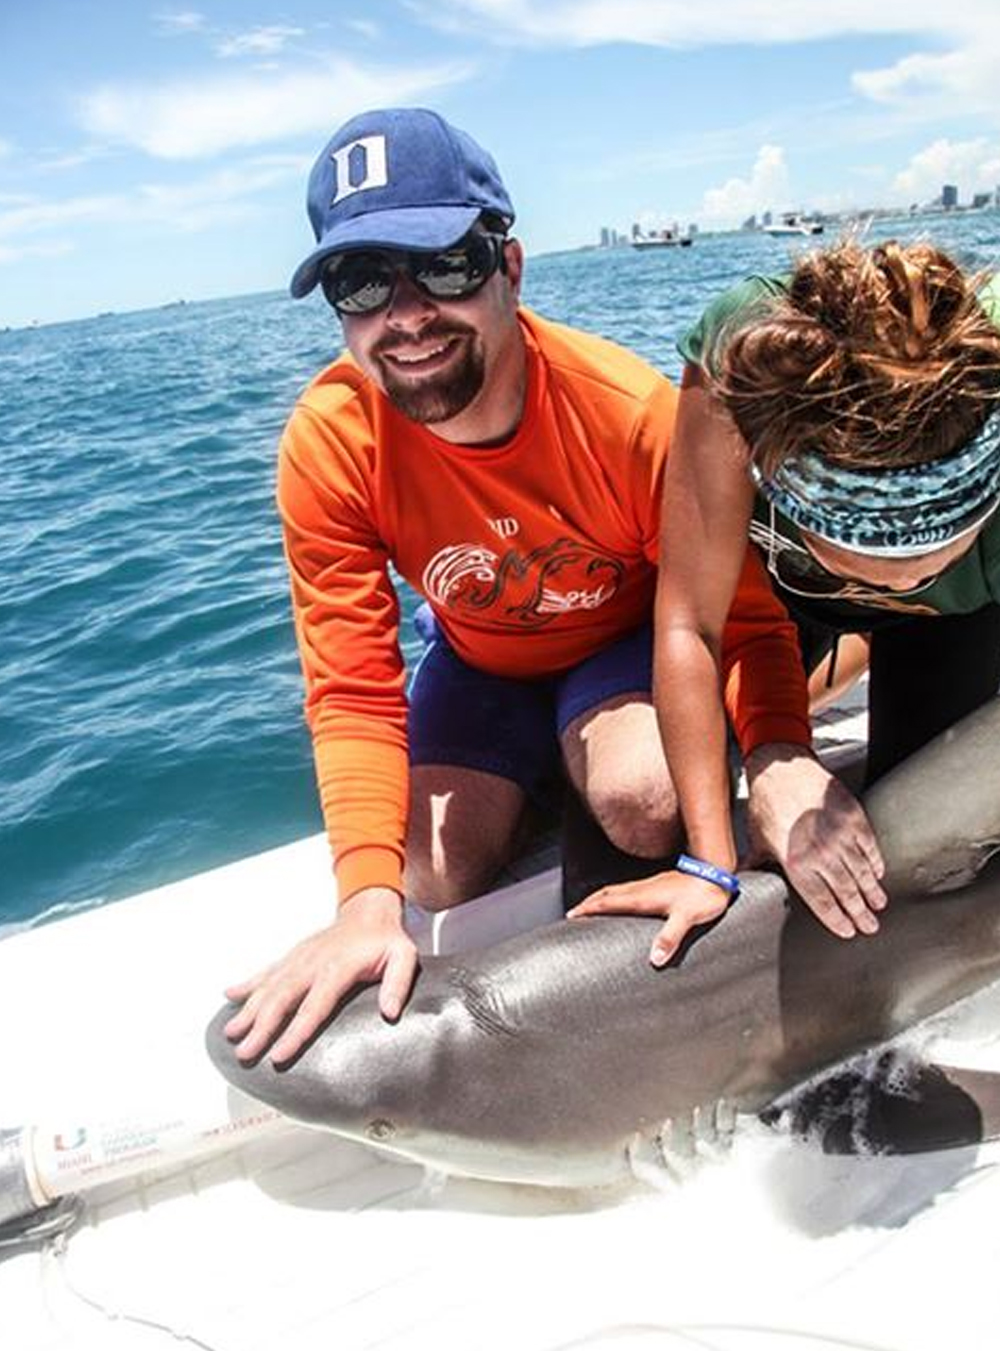 David Shiffman, Shark Conservation Biologist - Dr. David Shiffman has many years of experience as a science communicator and is known for his passion for shark science and conservation. He has a large following on social media, primarily Facebook and Twitter.